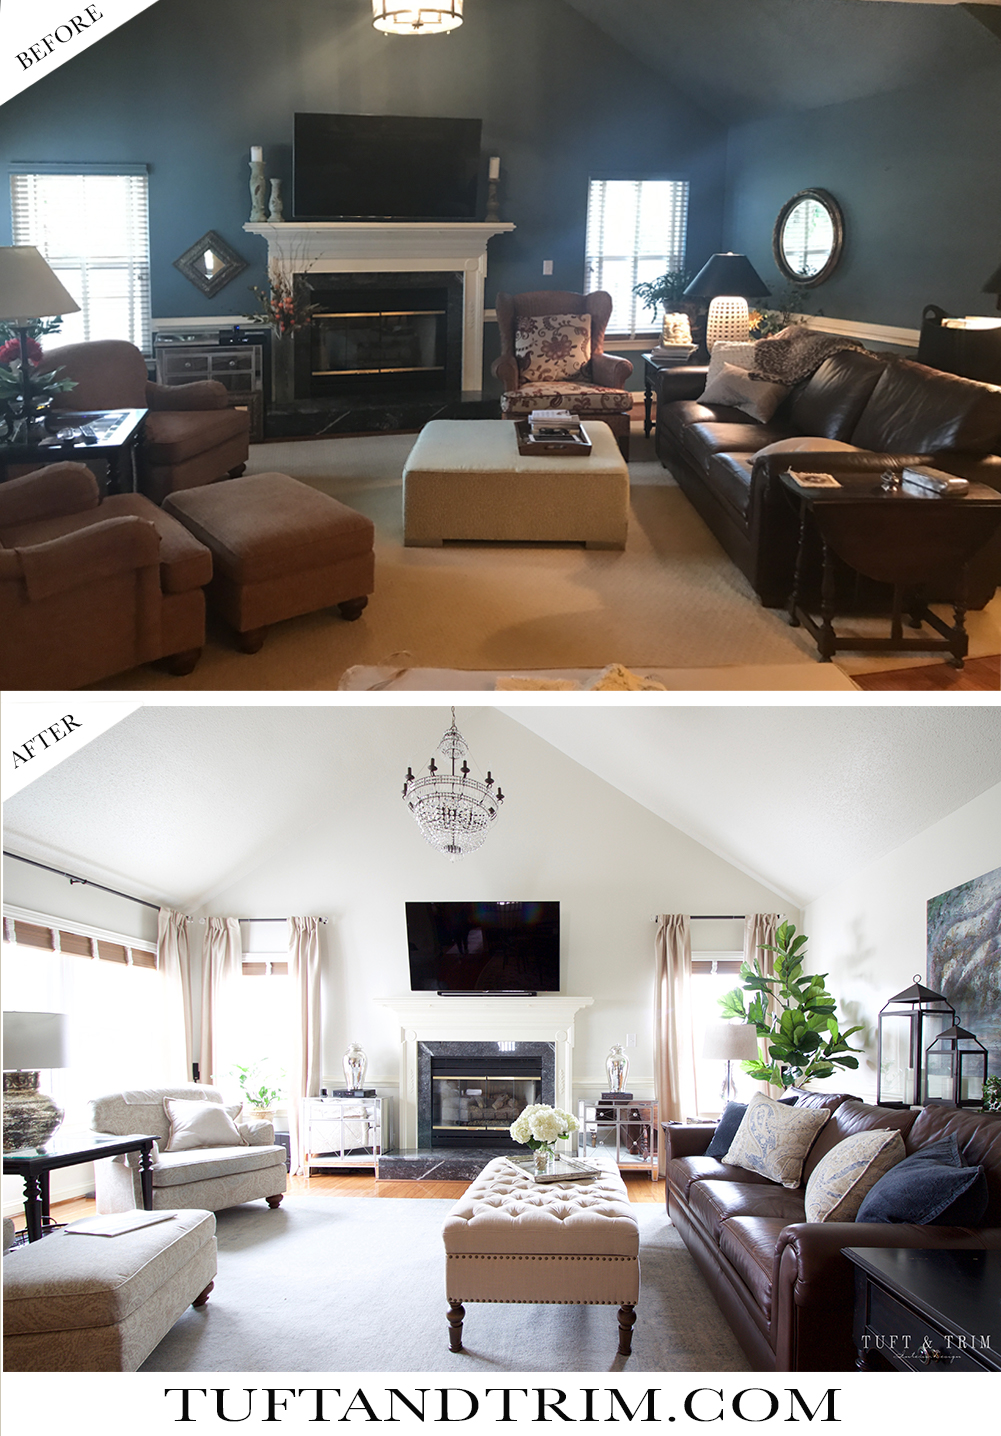 Before And After Diy Kitchen Renovation: Before And After: A Living Room Transformation